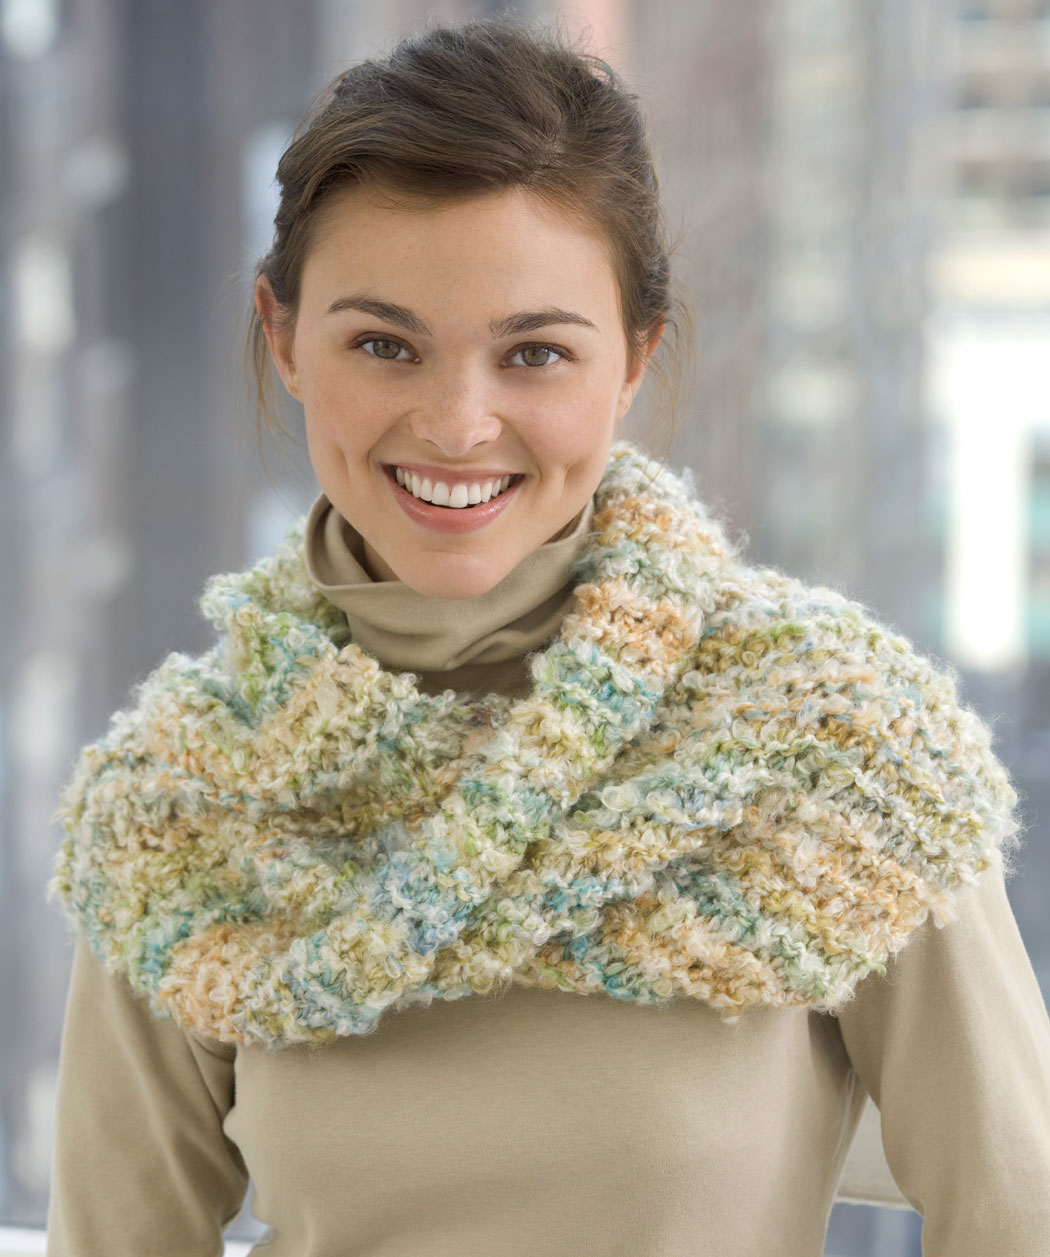 Knitting Patterns Scarf Cowl : Mobius Scarf Knitting Pattern A Knitting Blog